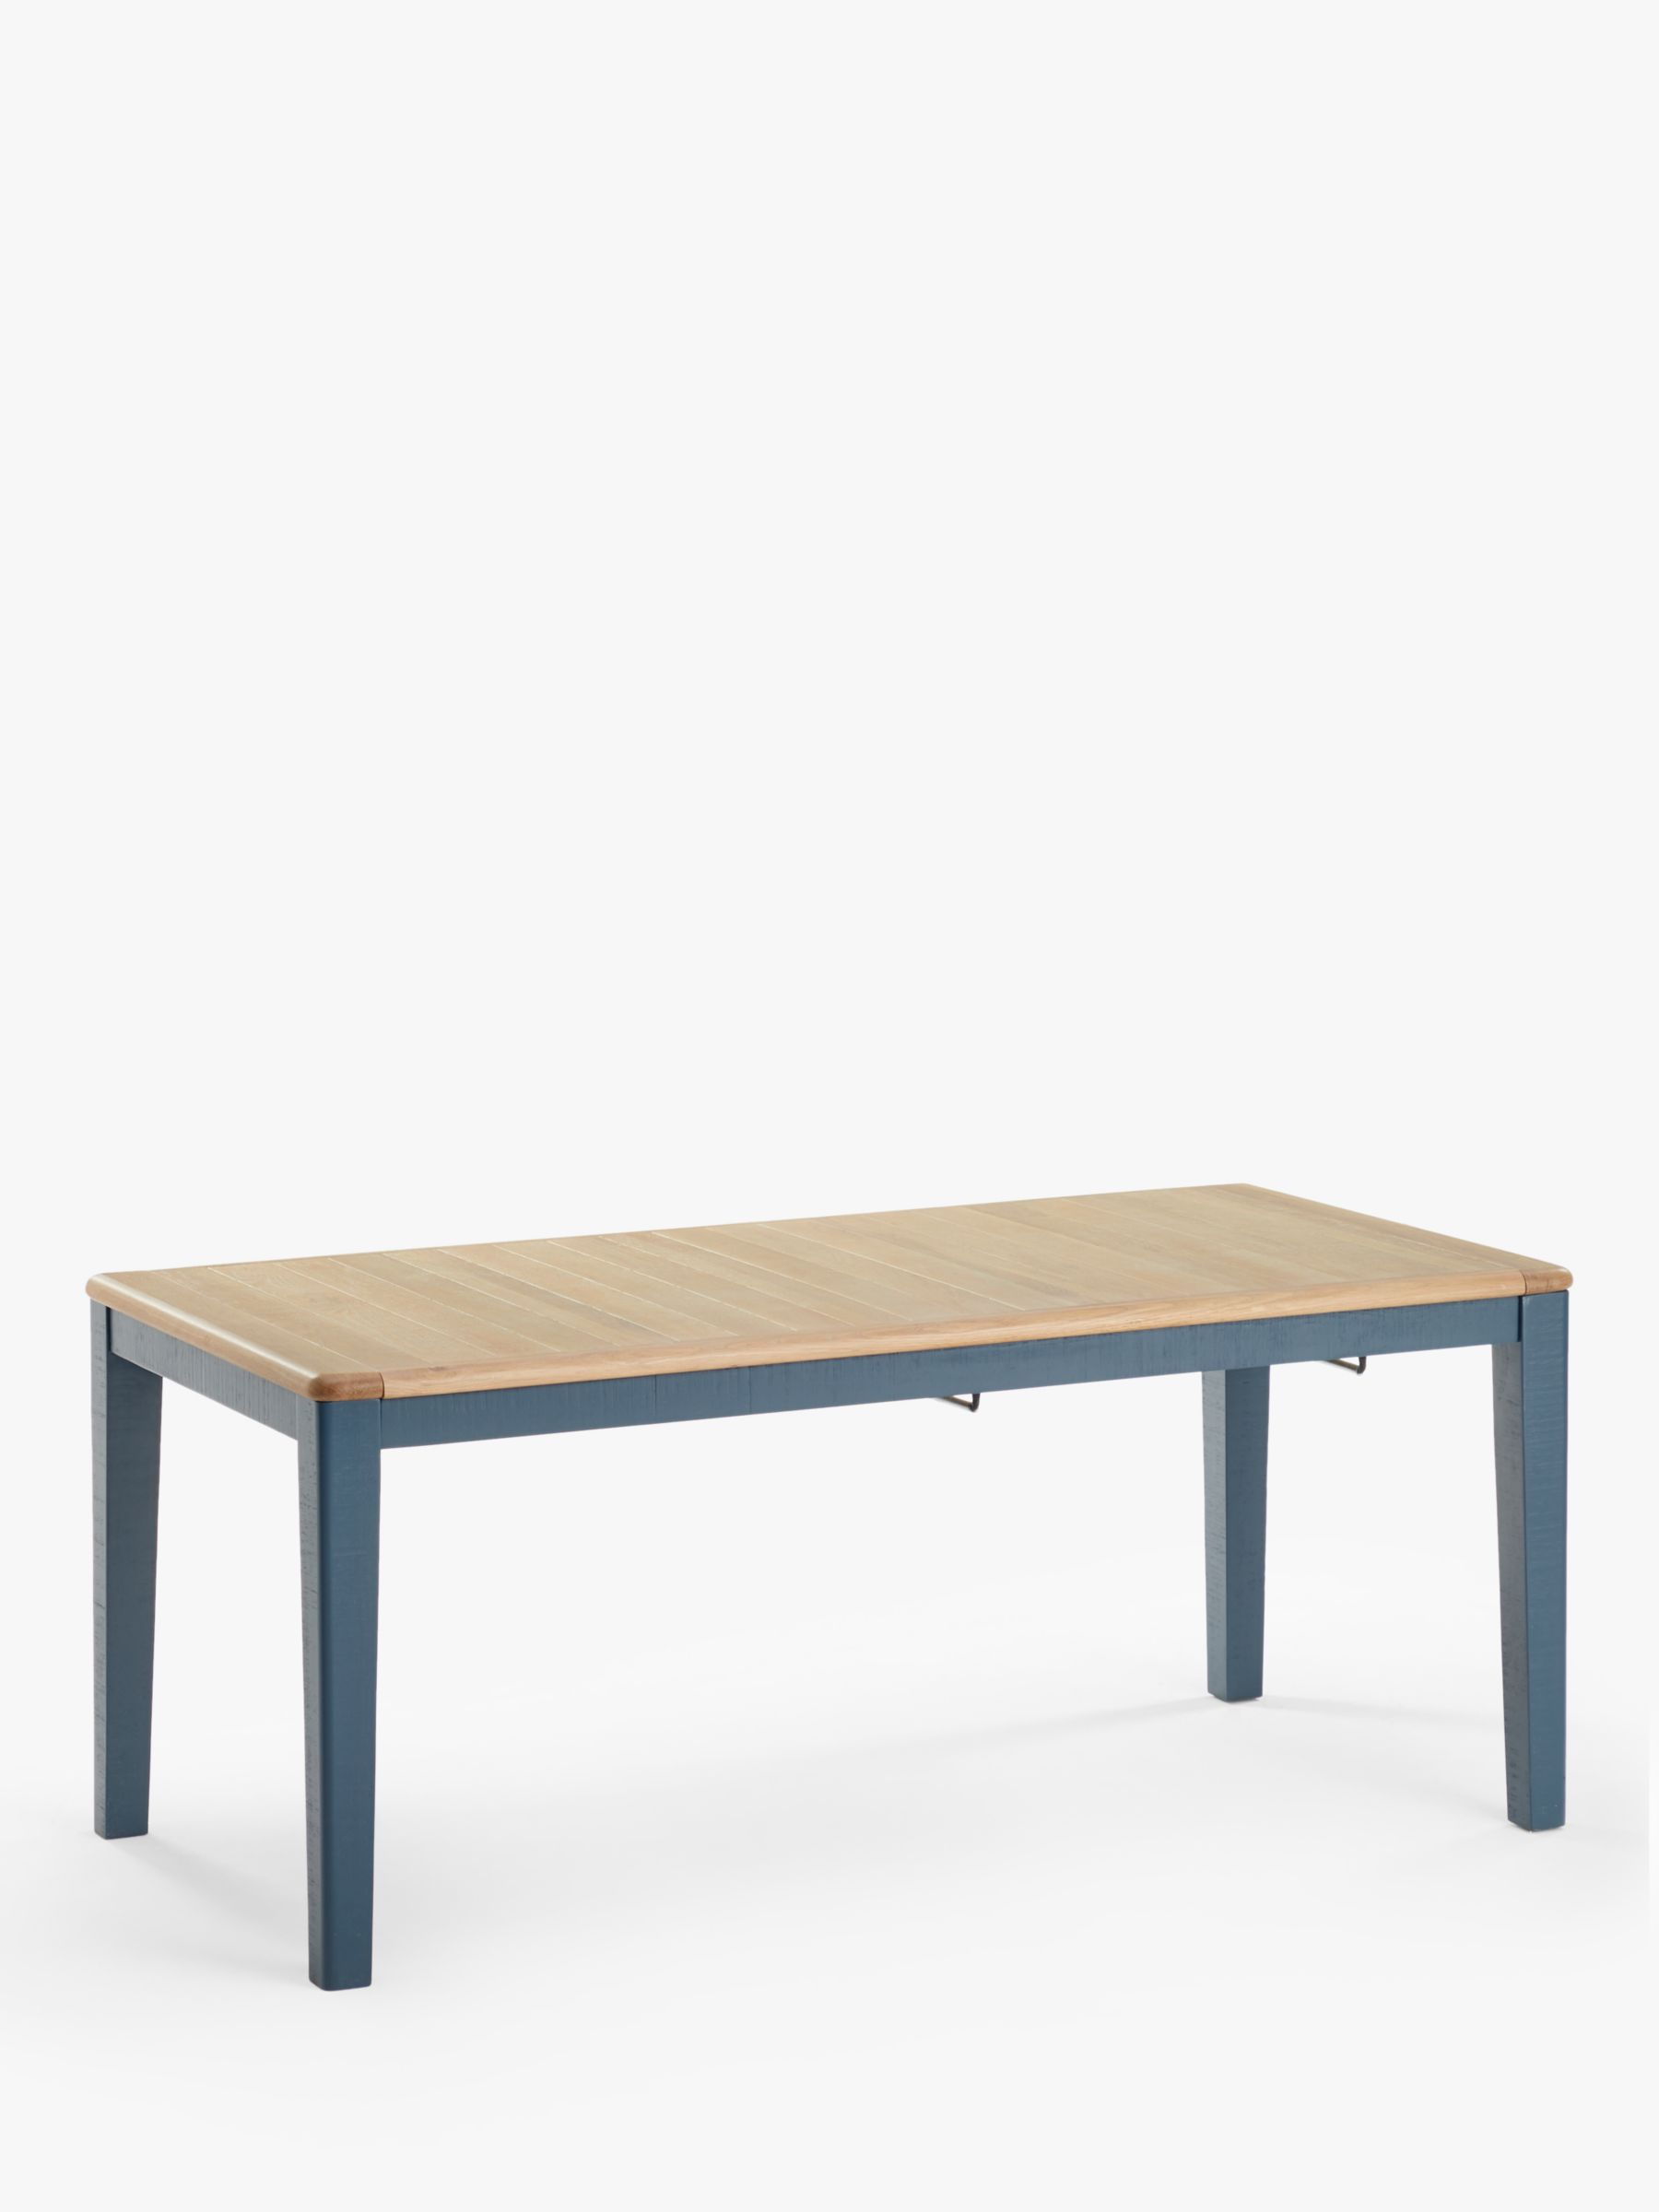 Loaf Chow 8 12 Seater Extending Dining Table Solid Oak Inky Blue At John Lewis Partners